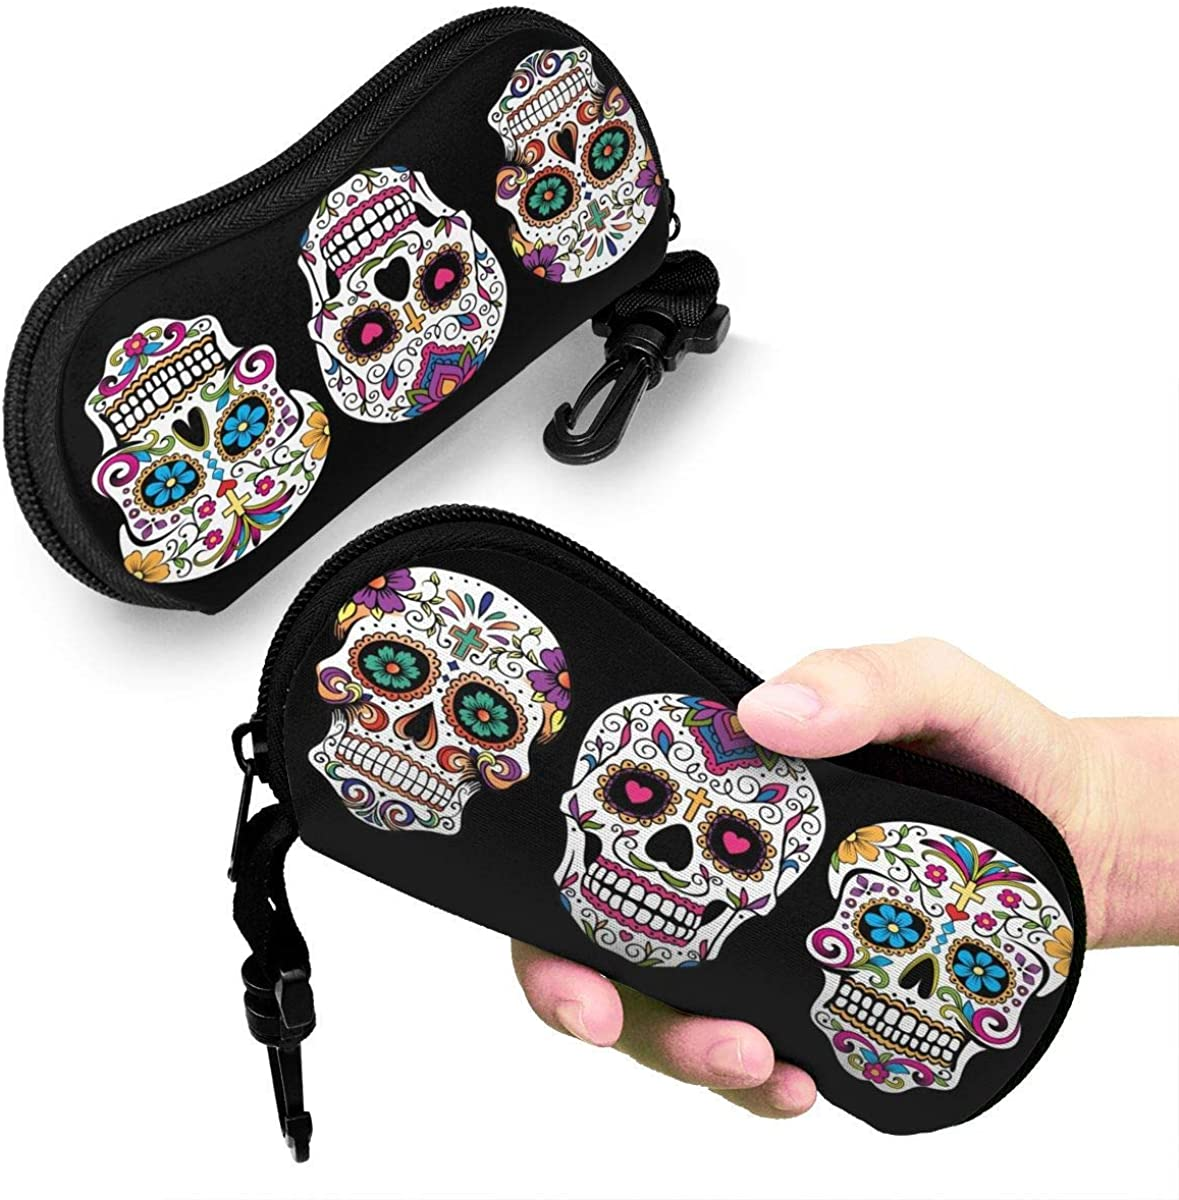 Eyeglasses Case Sugar Skull Black Background Glasses Case Anti-drop Soft Spectacle Storage Box Glasses Pouch Sunglasses Safe Protective Holder Shell With Zipper For Reading Glasses Girls Boy